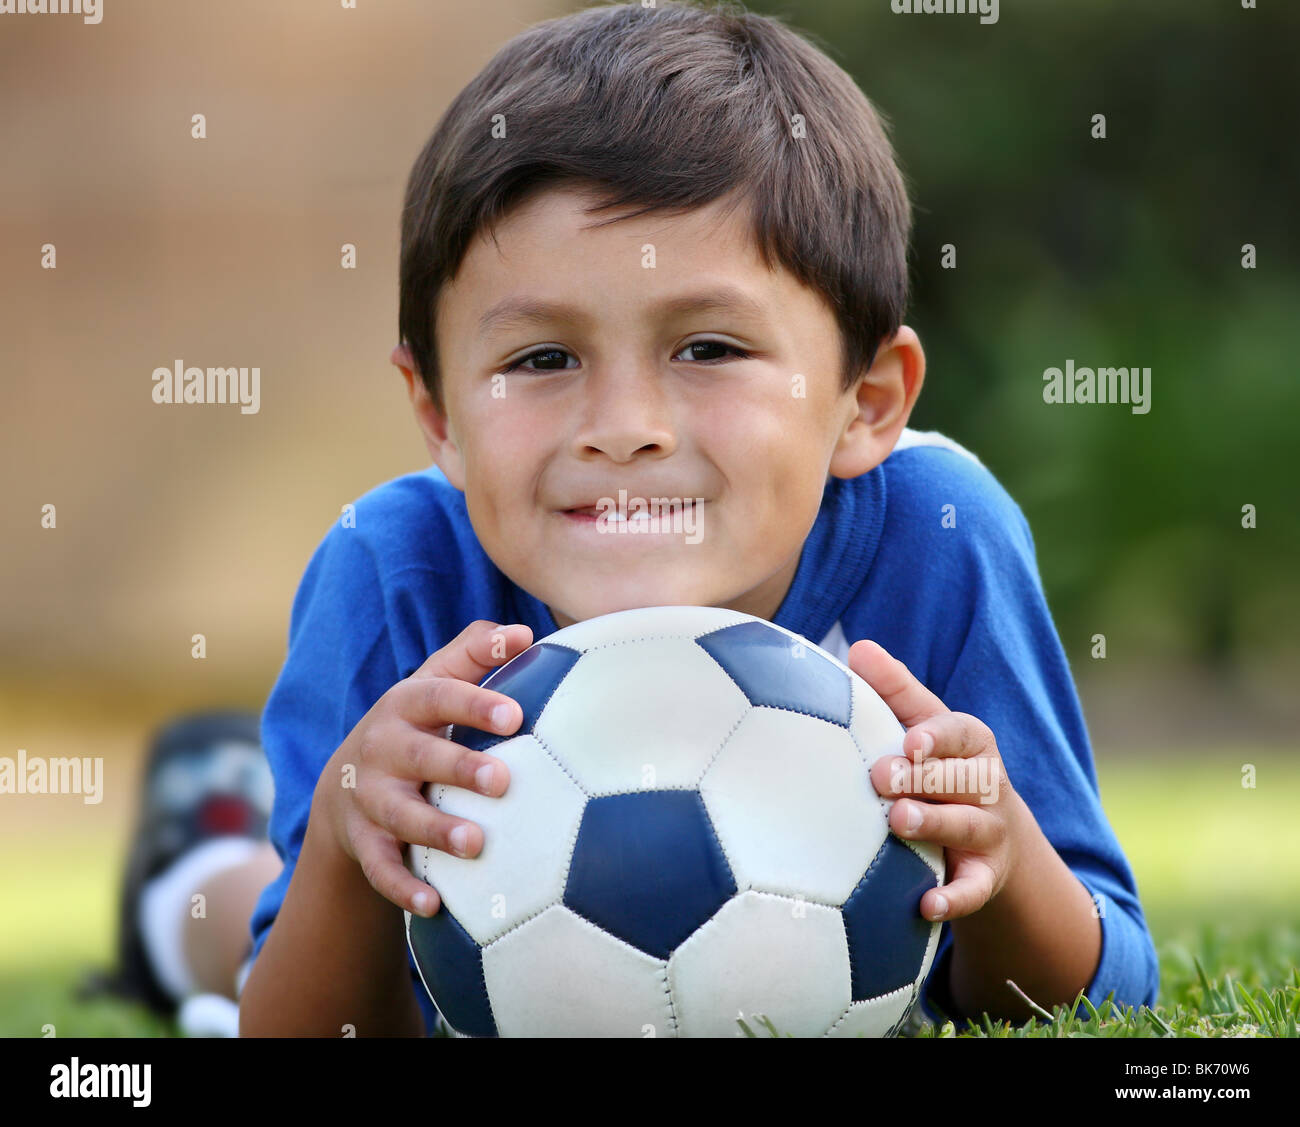 Young brown haired hispanic boy in blue shirt lying down on grass with soccer ball in hands - Stock Image